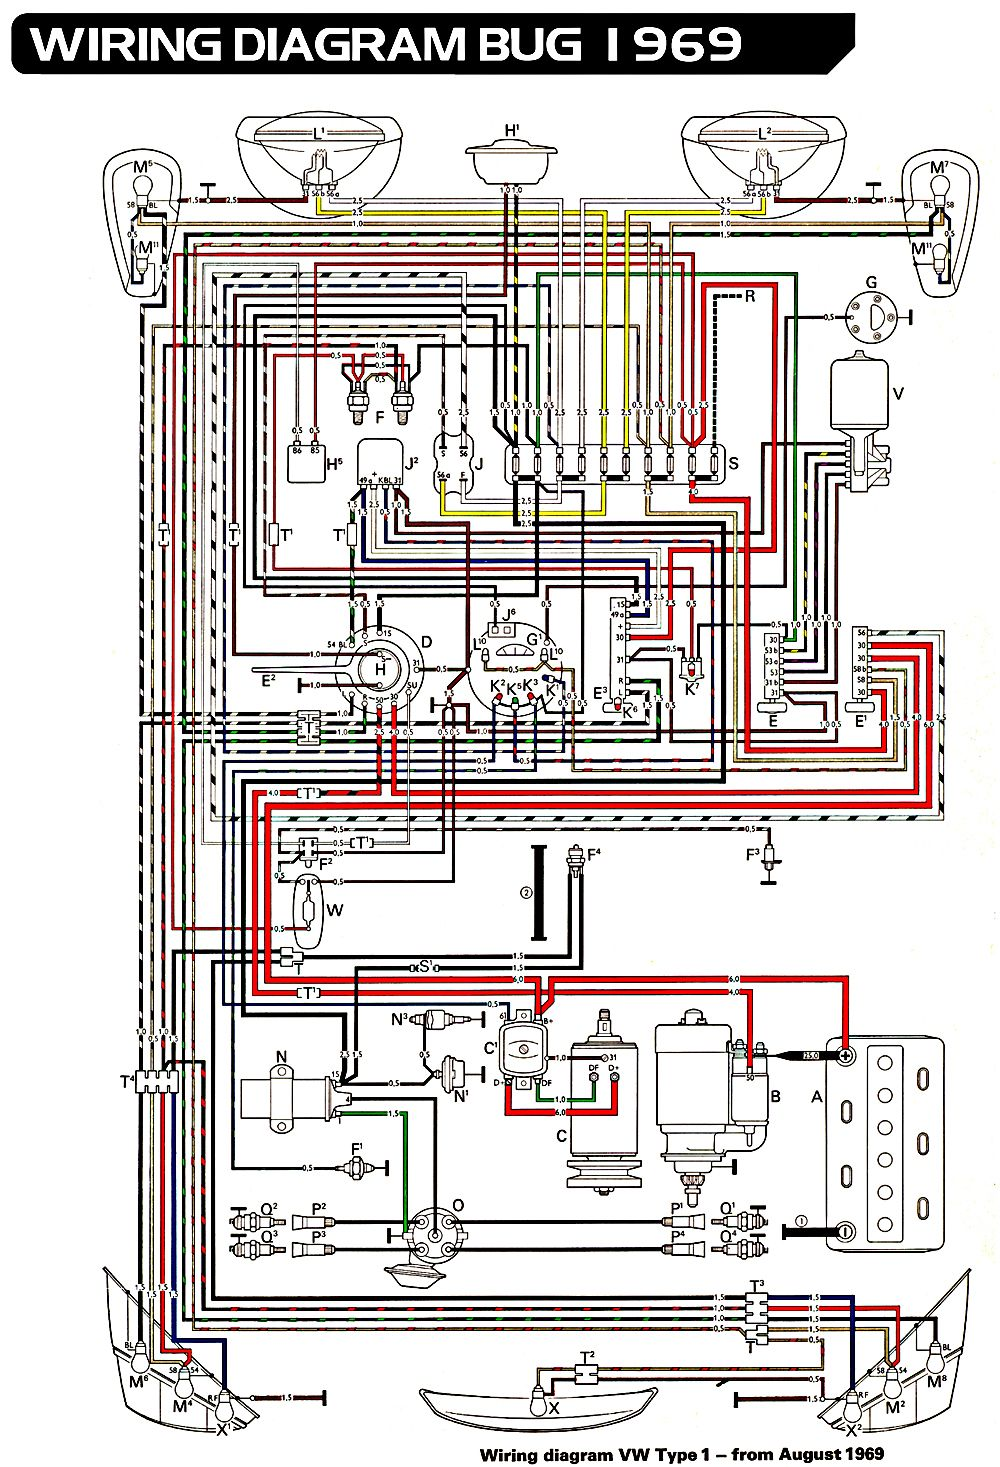 6d75c15875479254f26a32a8499d9044 69 vw bug wiring harness diagrams schematics at 1967 beetle diagram